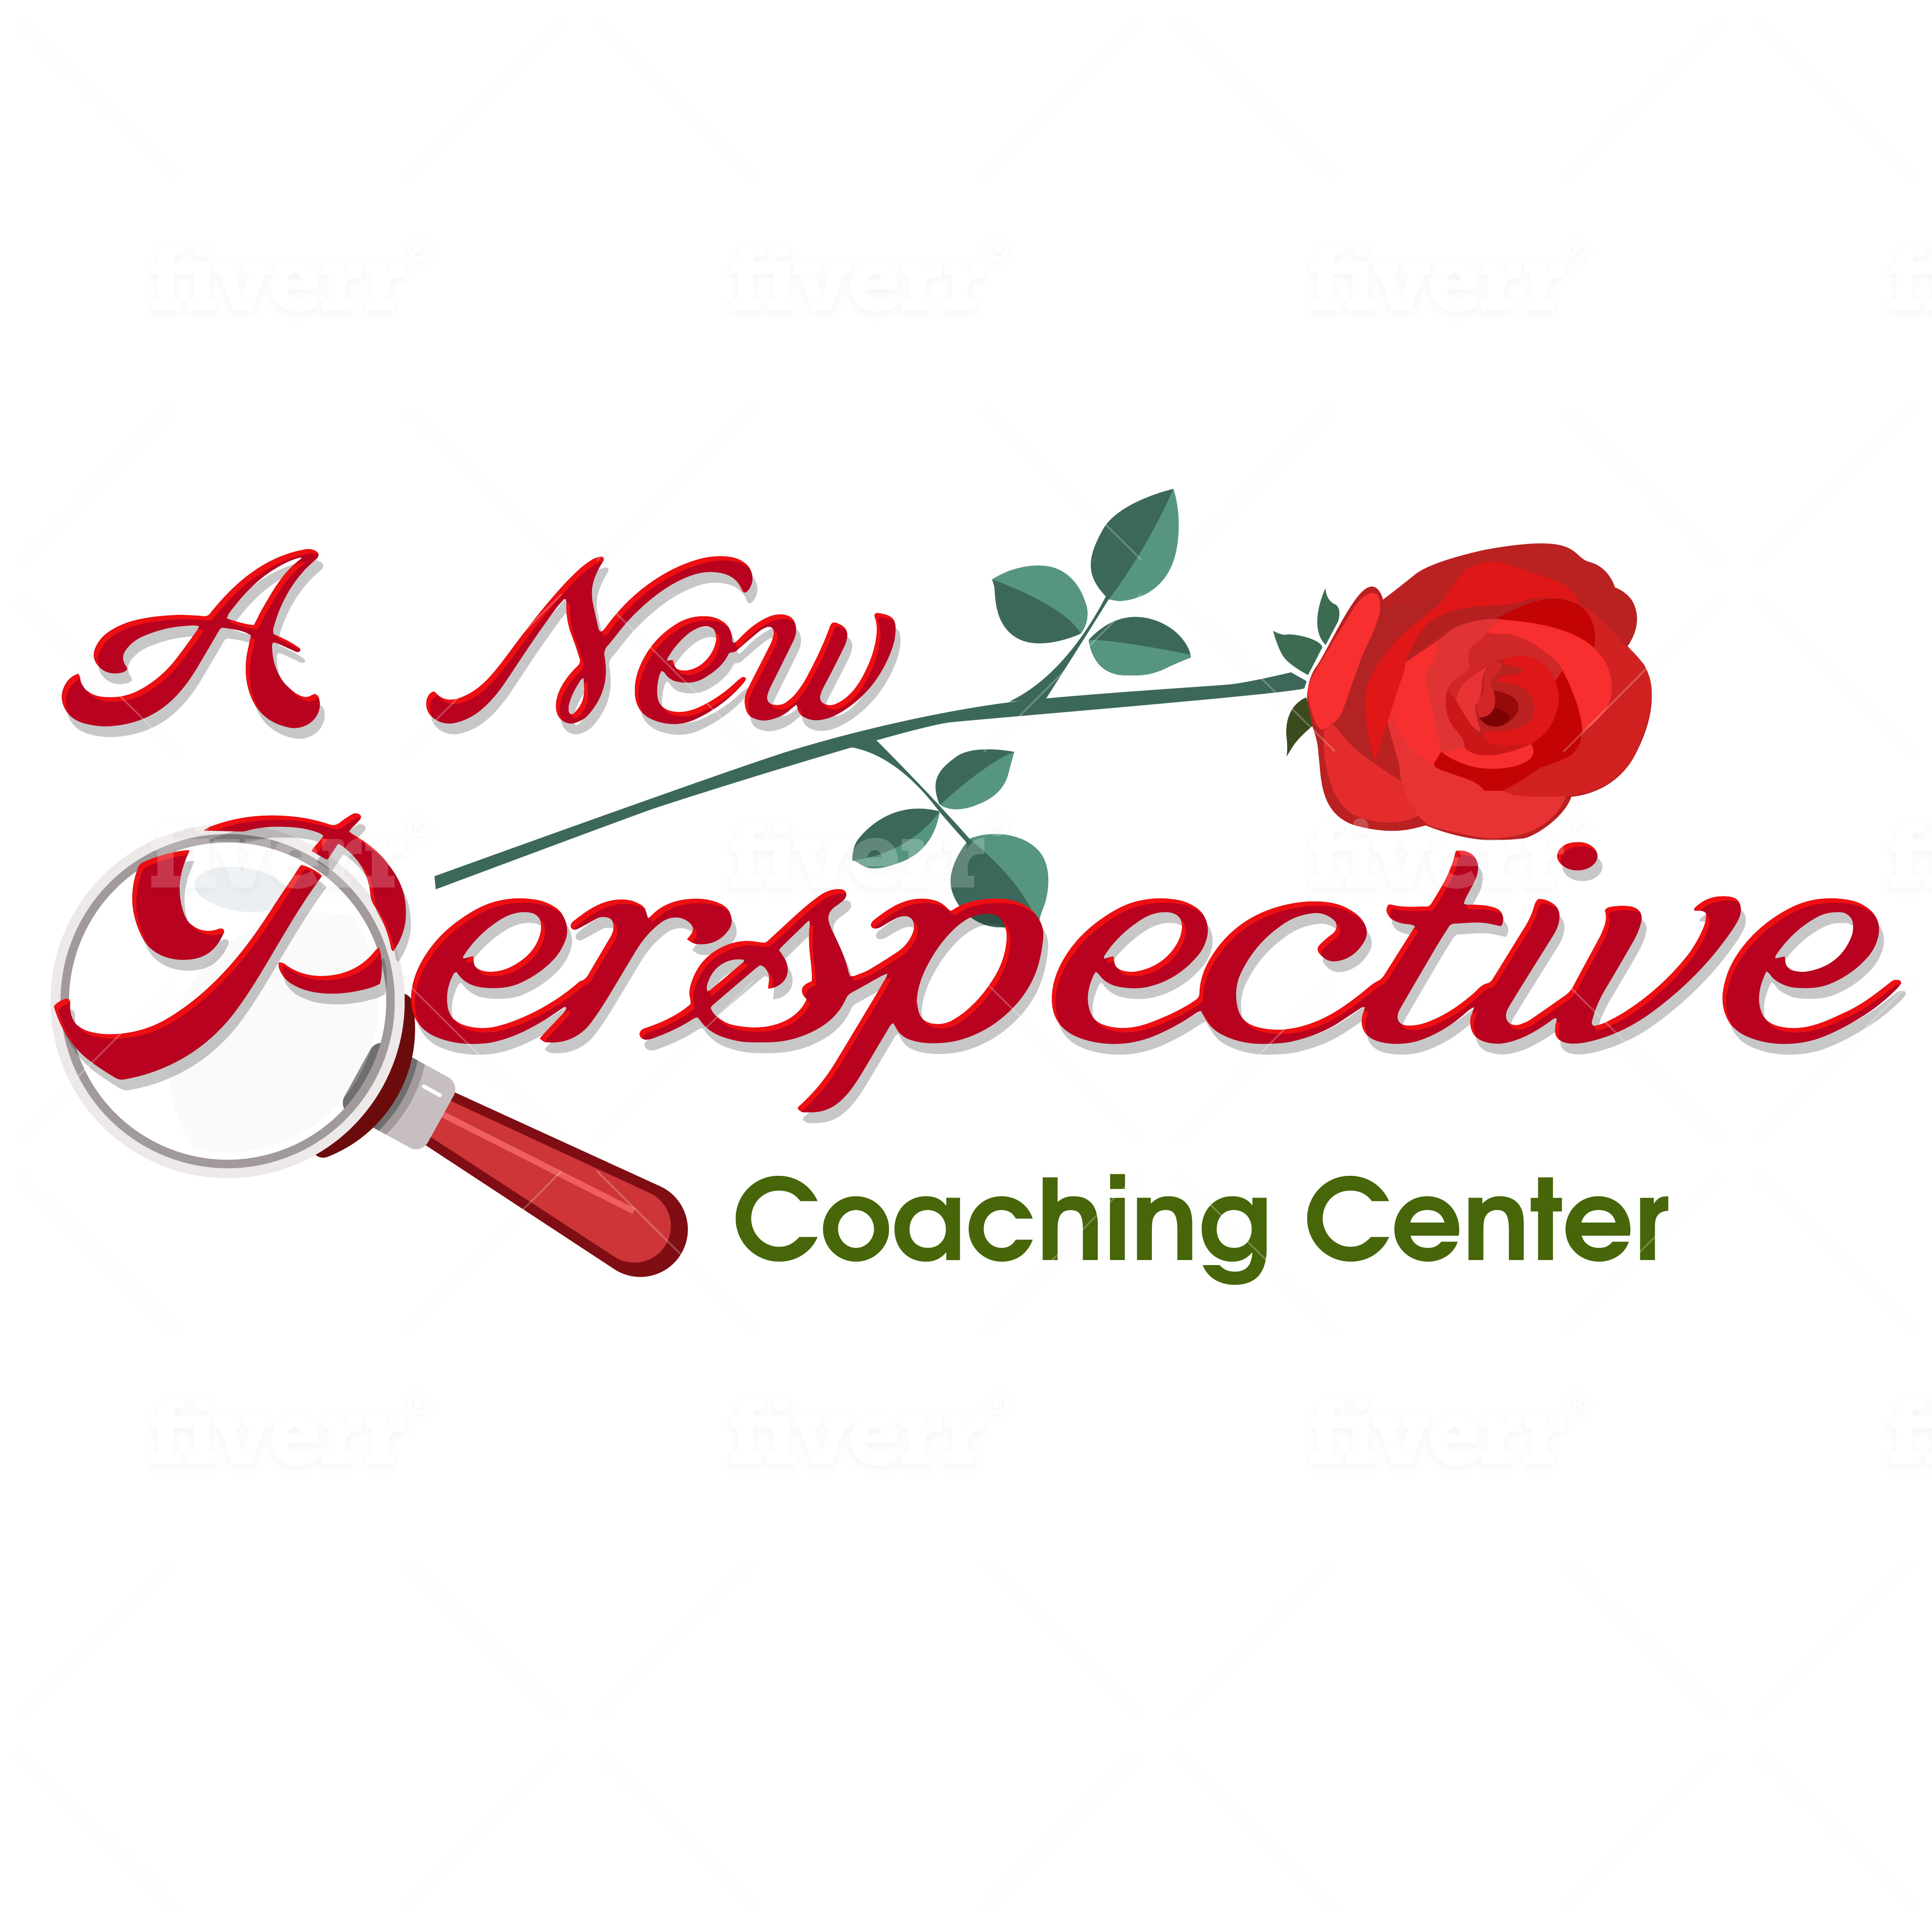 A new perspective coaching center